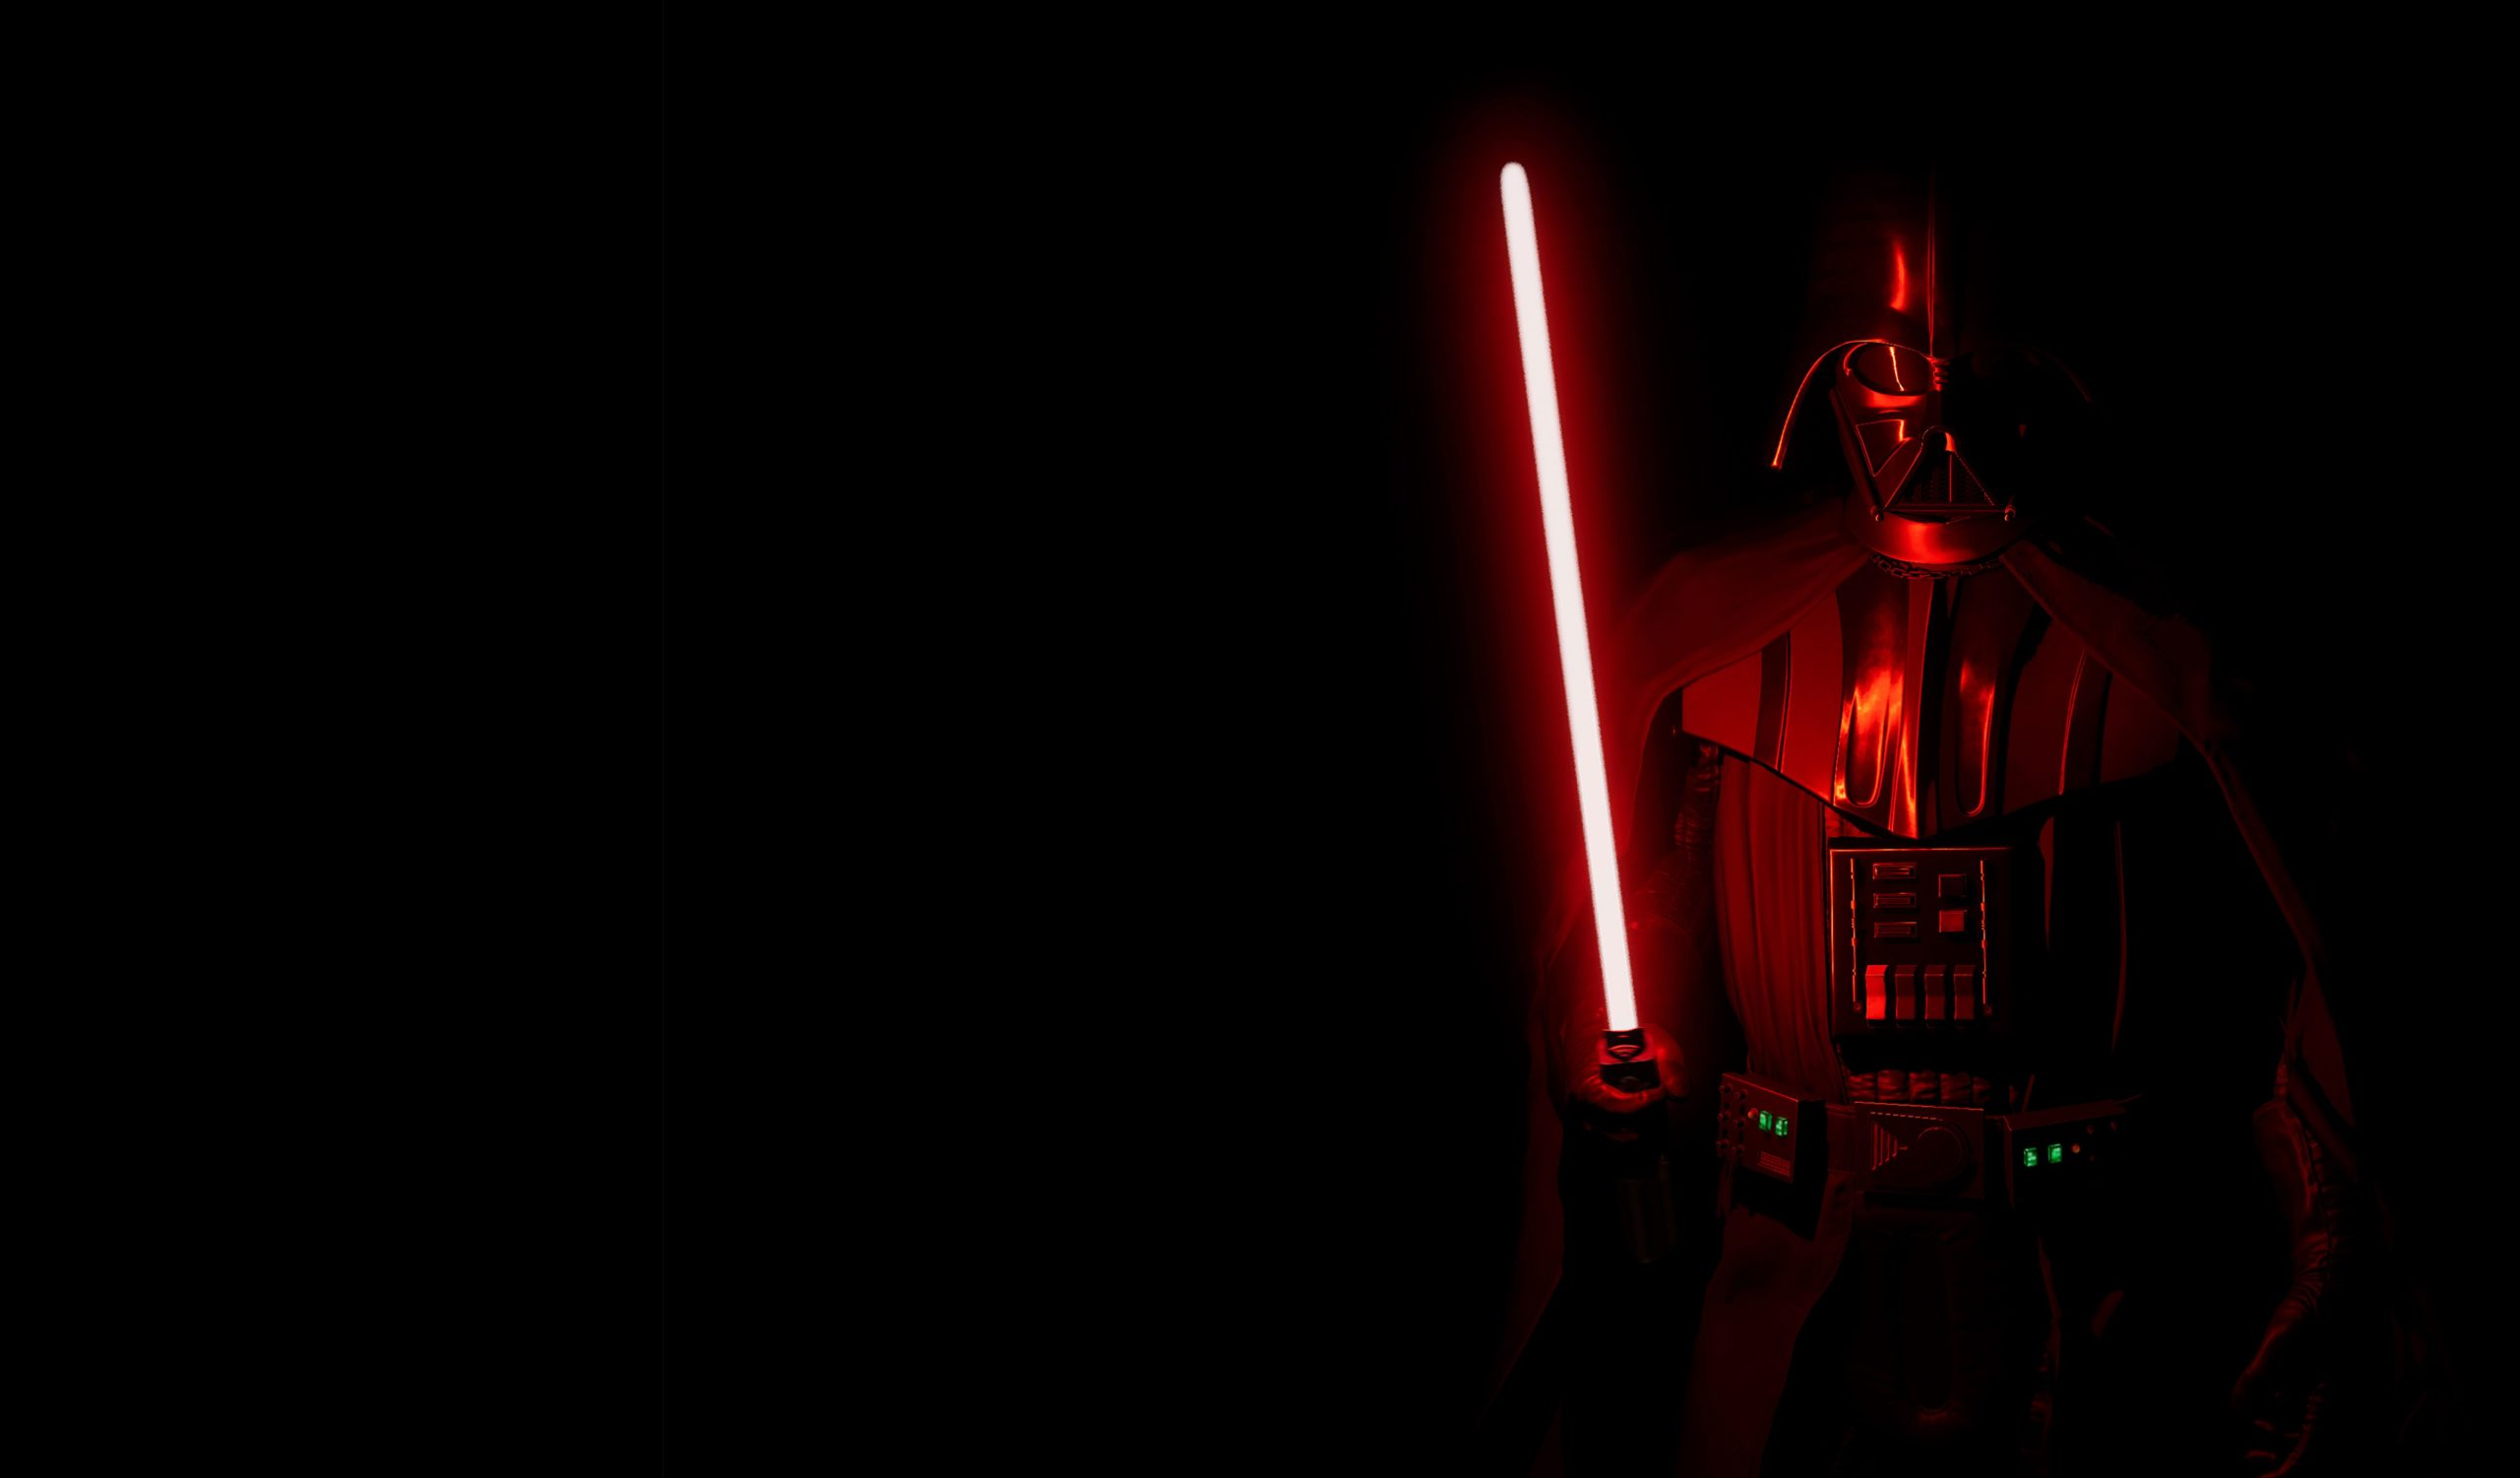 star wars darth vader background